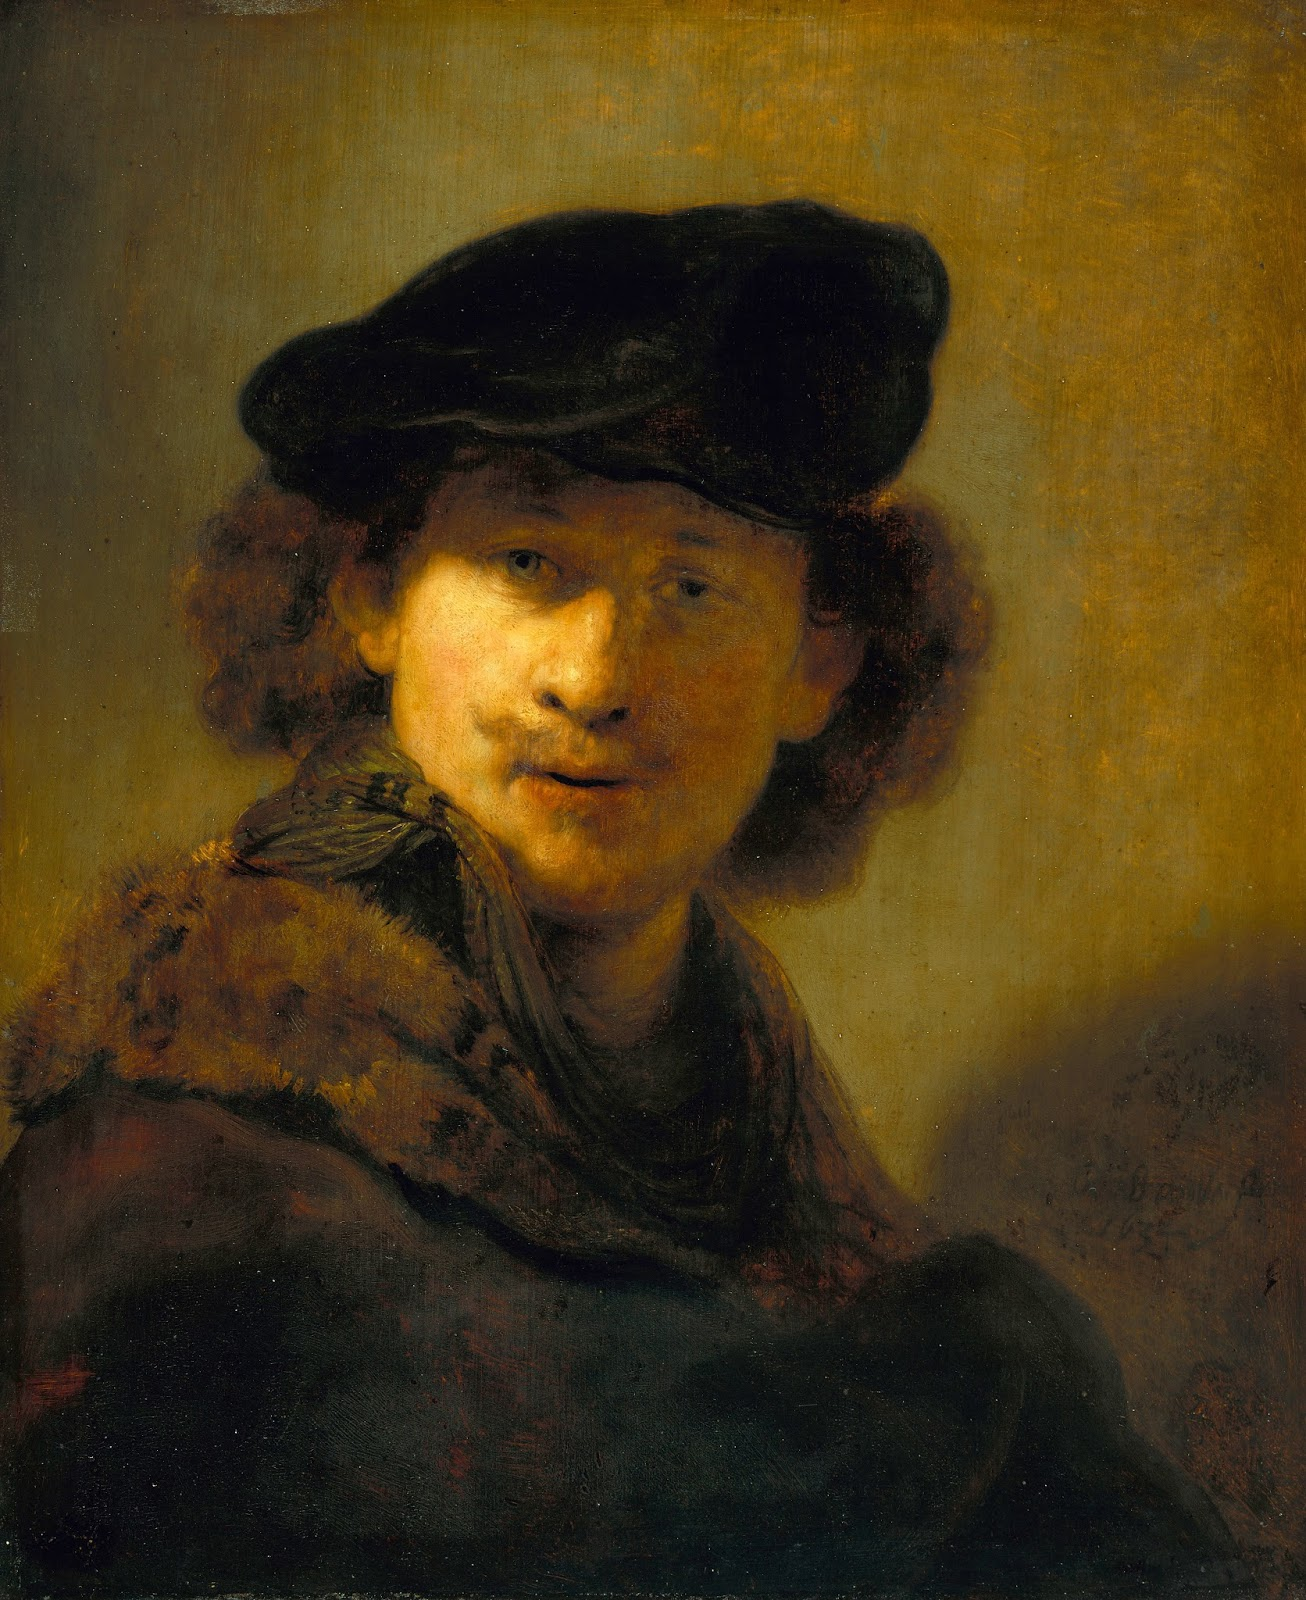 self portraitv Rembrandt, self portrait: the pigment analysis reveals a restricted palette of ochres, lead white and carbon black with minute traces of vermilion rembrandt, self portrait: the pigment analysis reveals a restricted palette of ochres, lead white and carbon black with minute traces of vermilion.